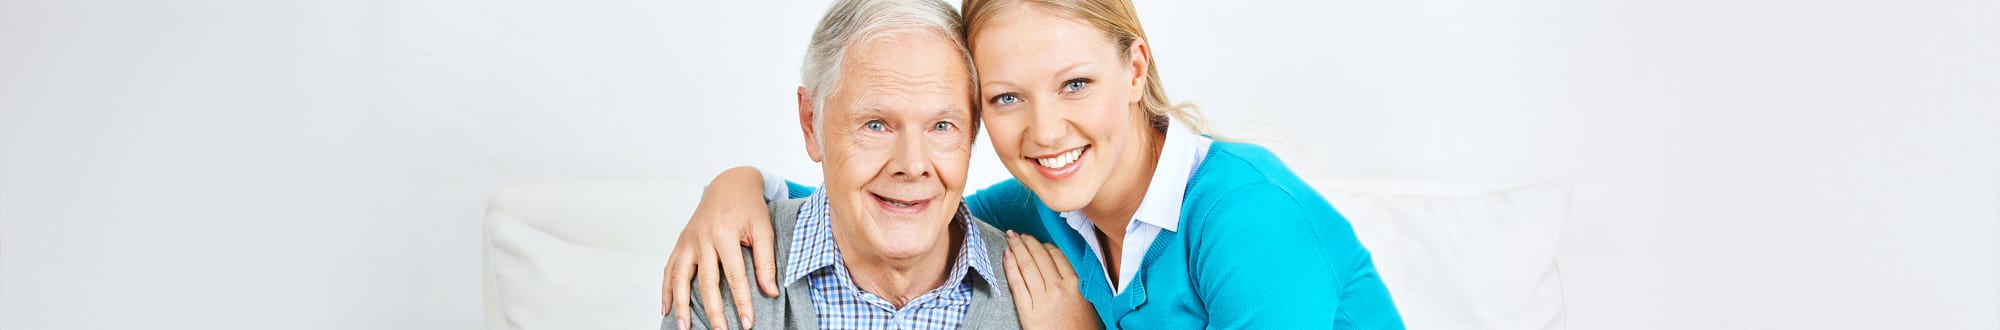 caregiver with an elderly man